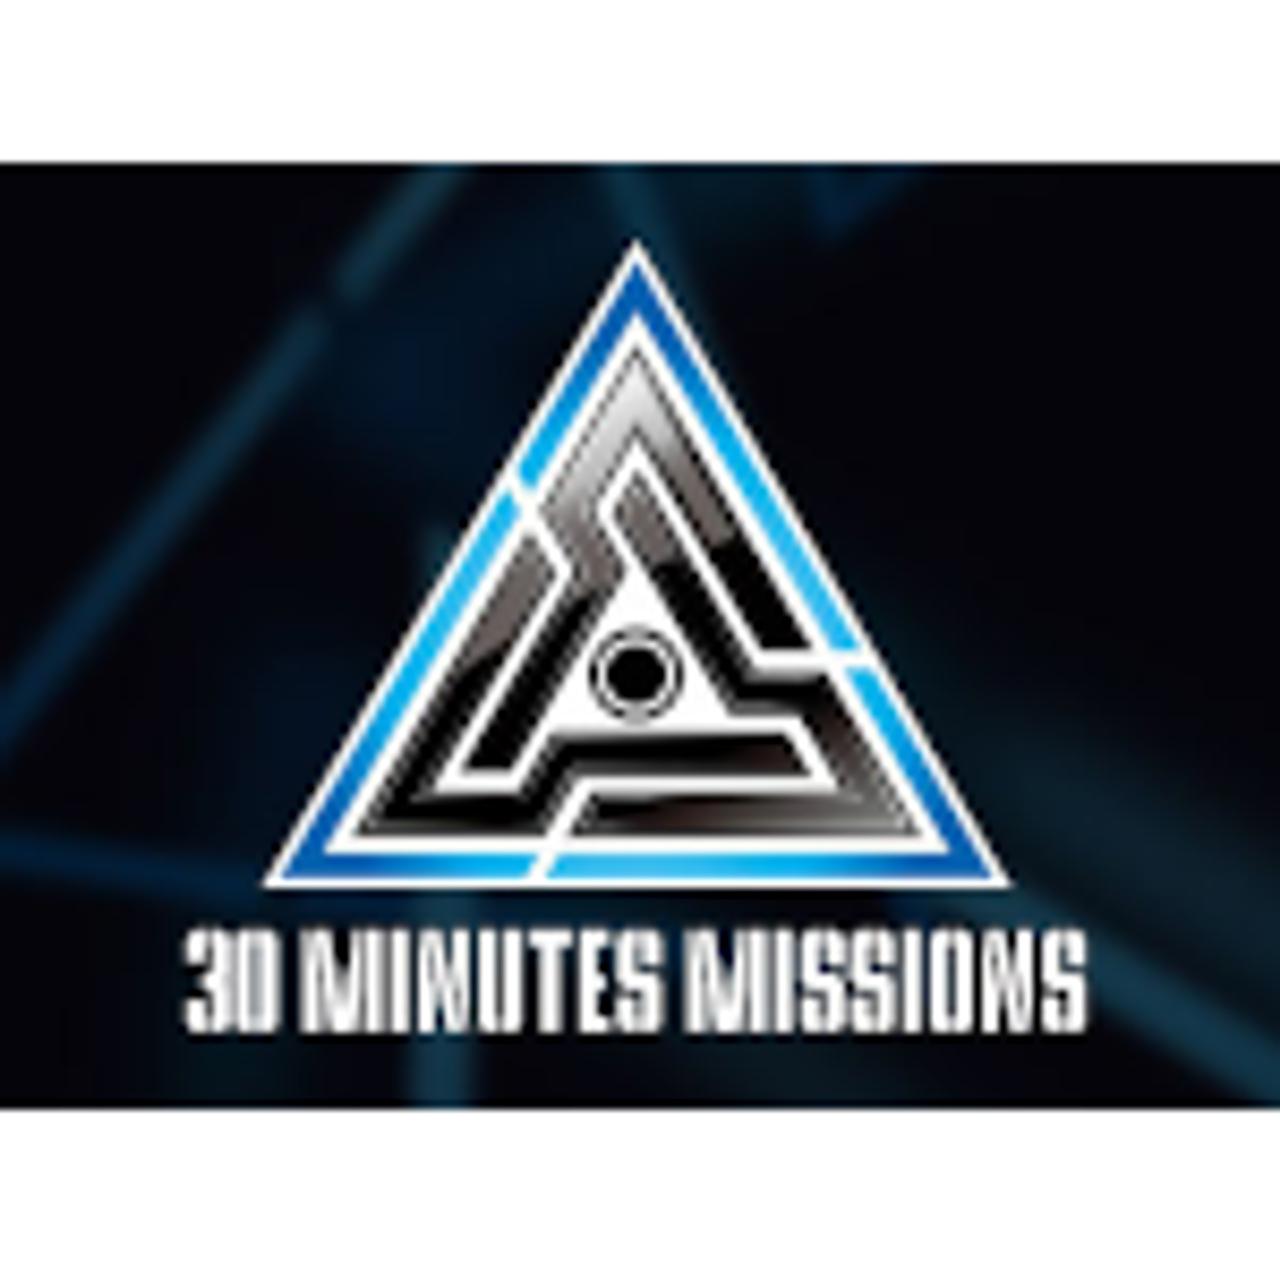 30 Minute Mission (30MM)